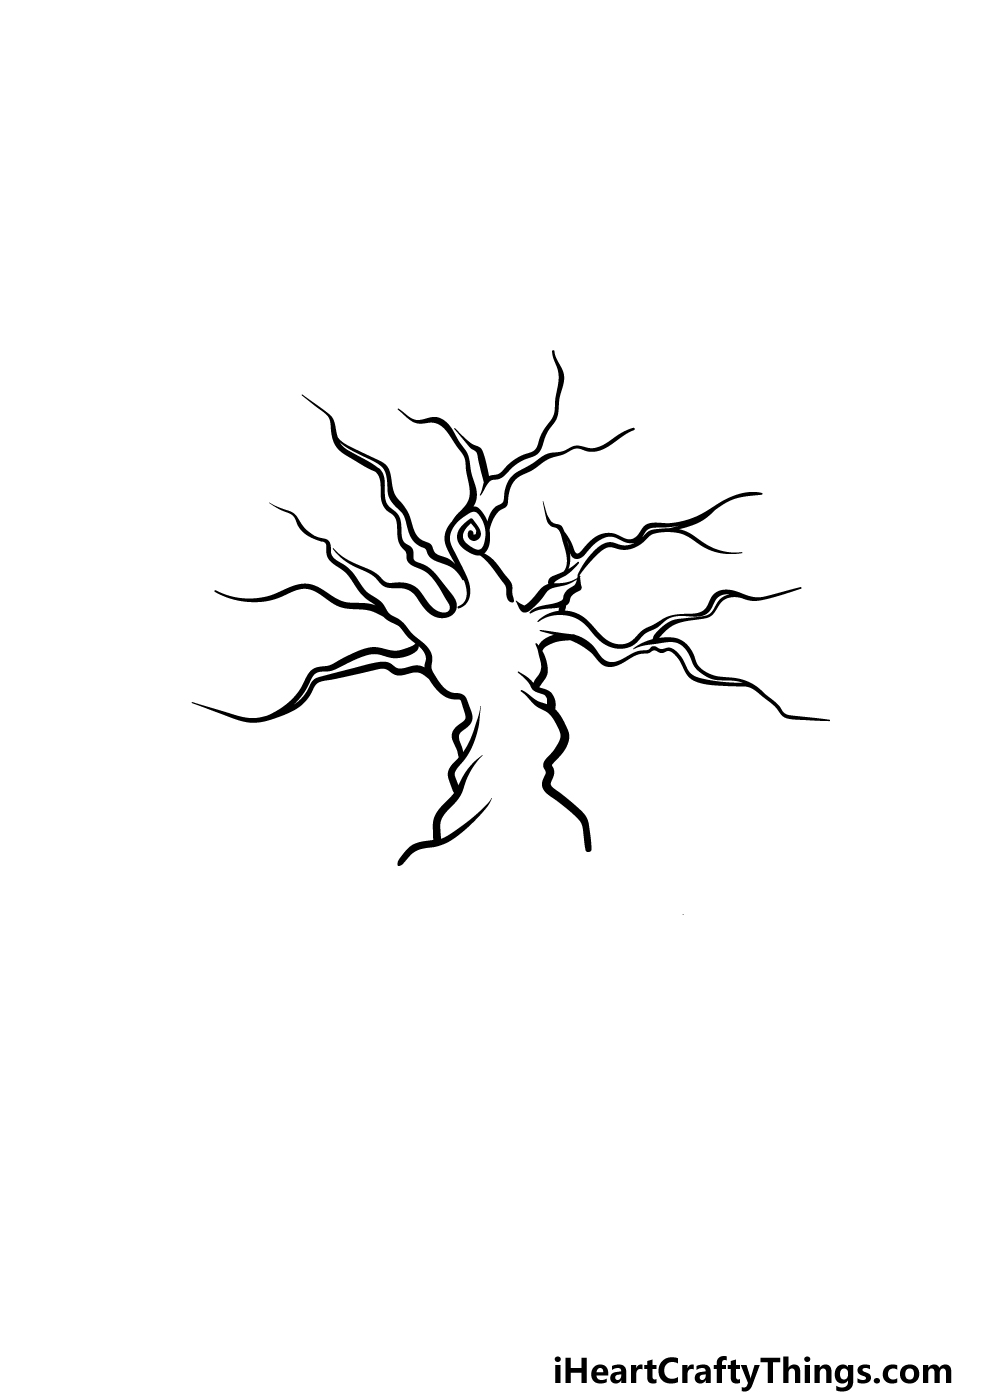 drawing the tree of life step 1